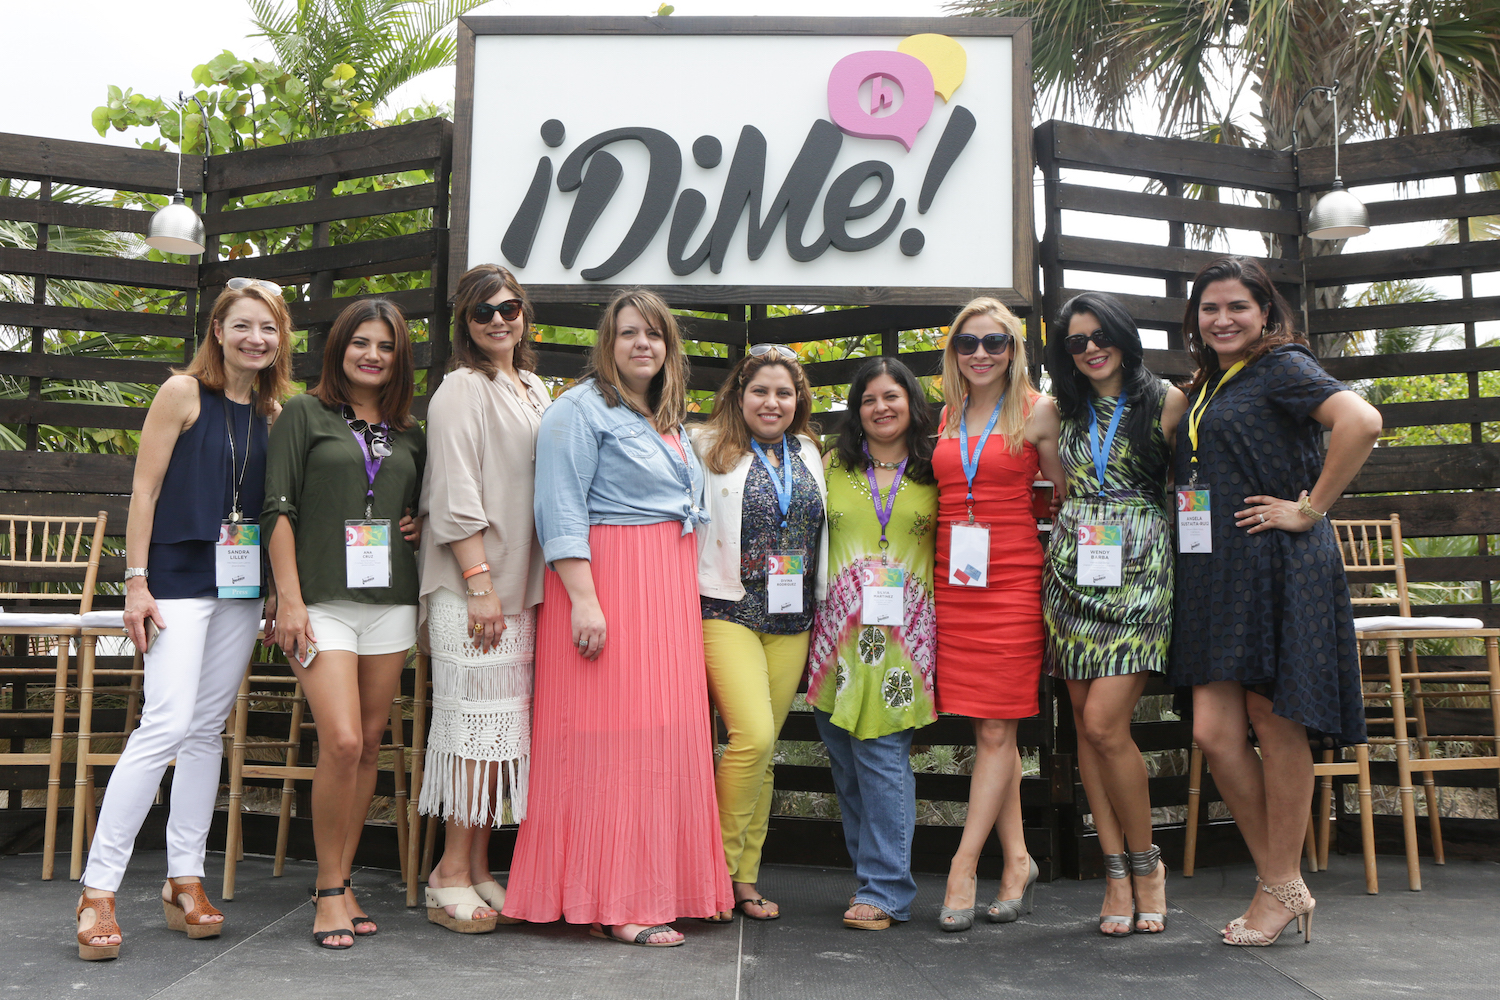 hispanicize-photos-event-miami-25